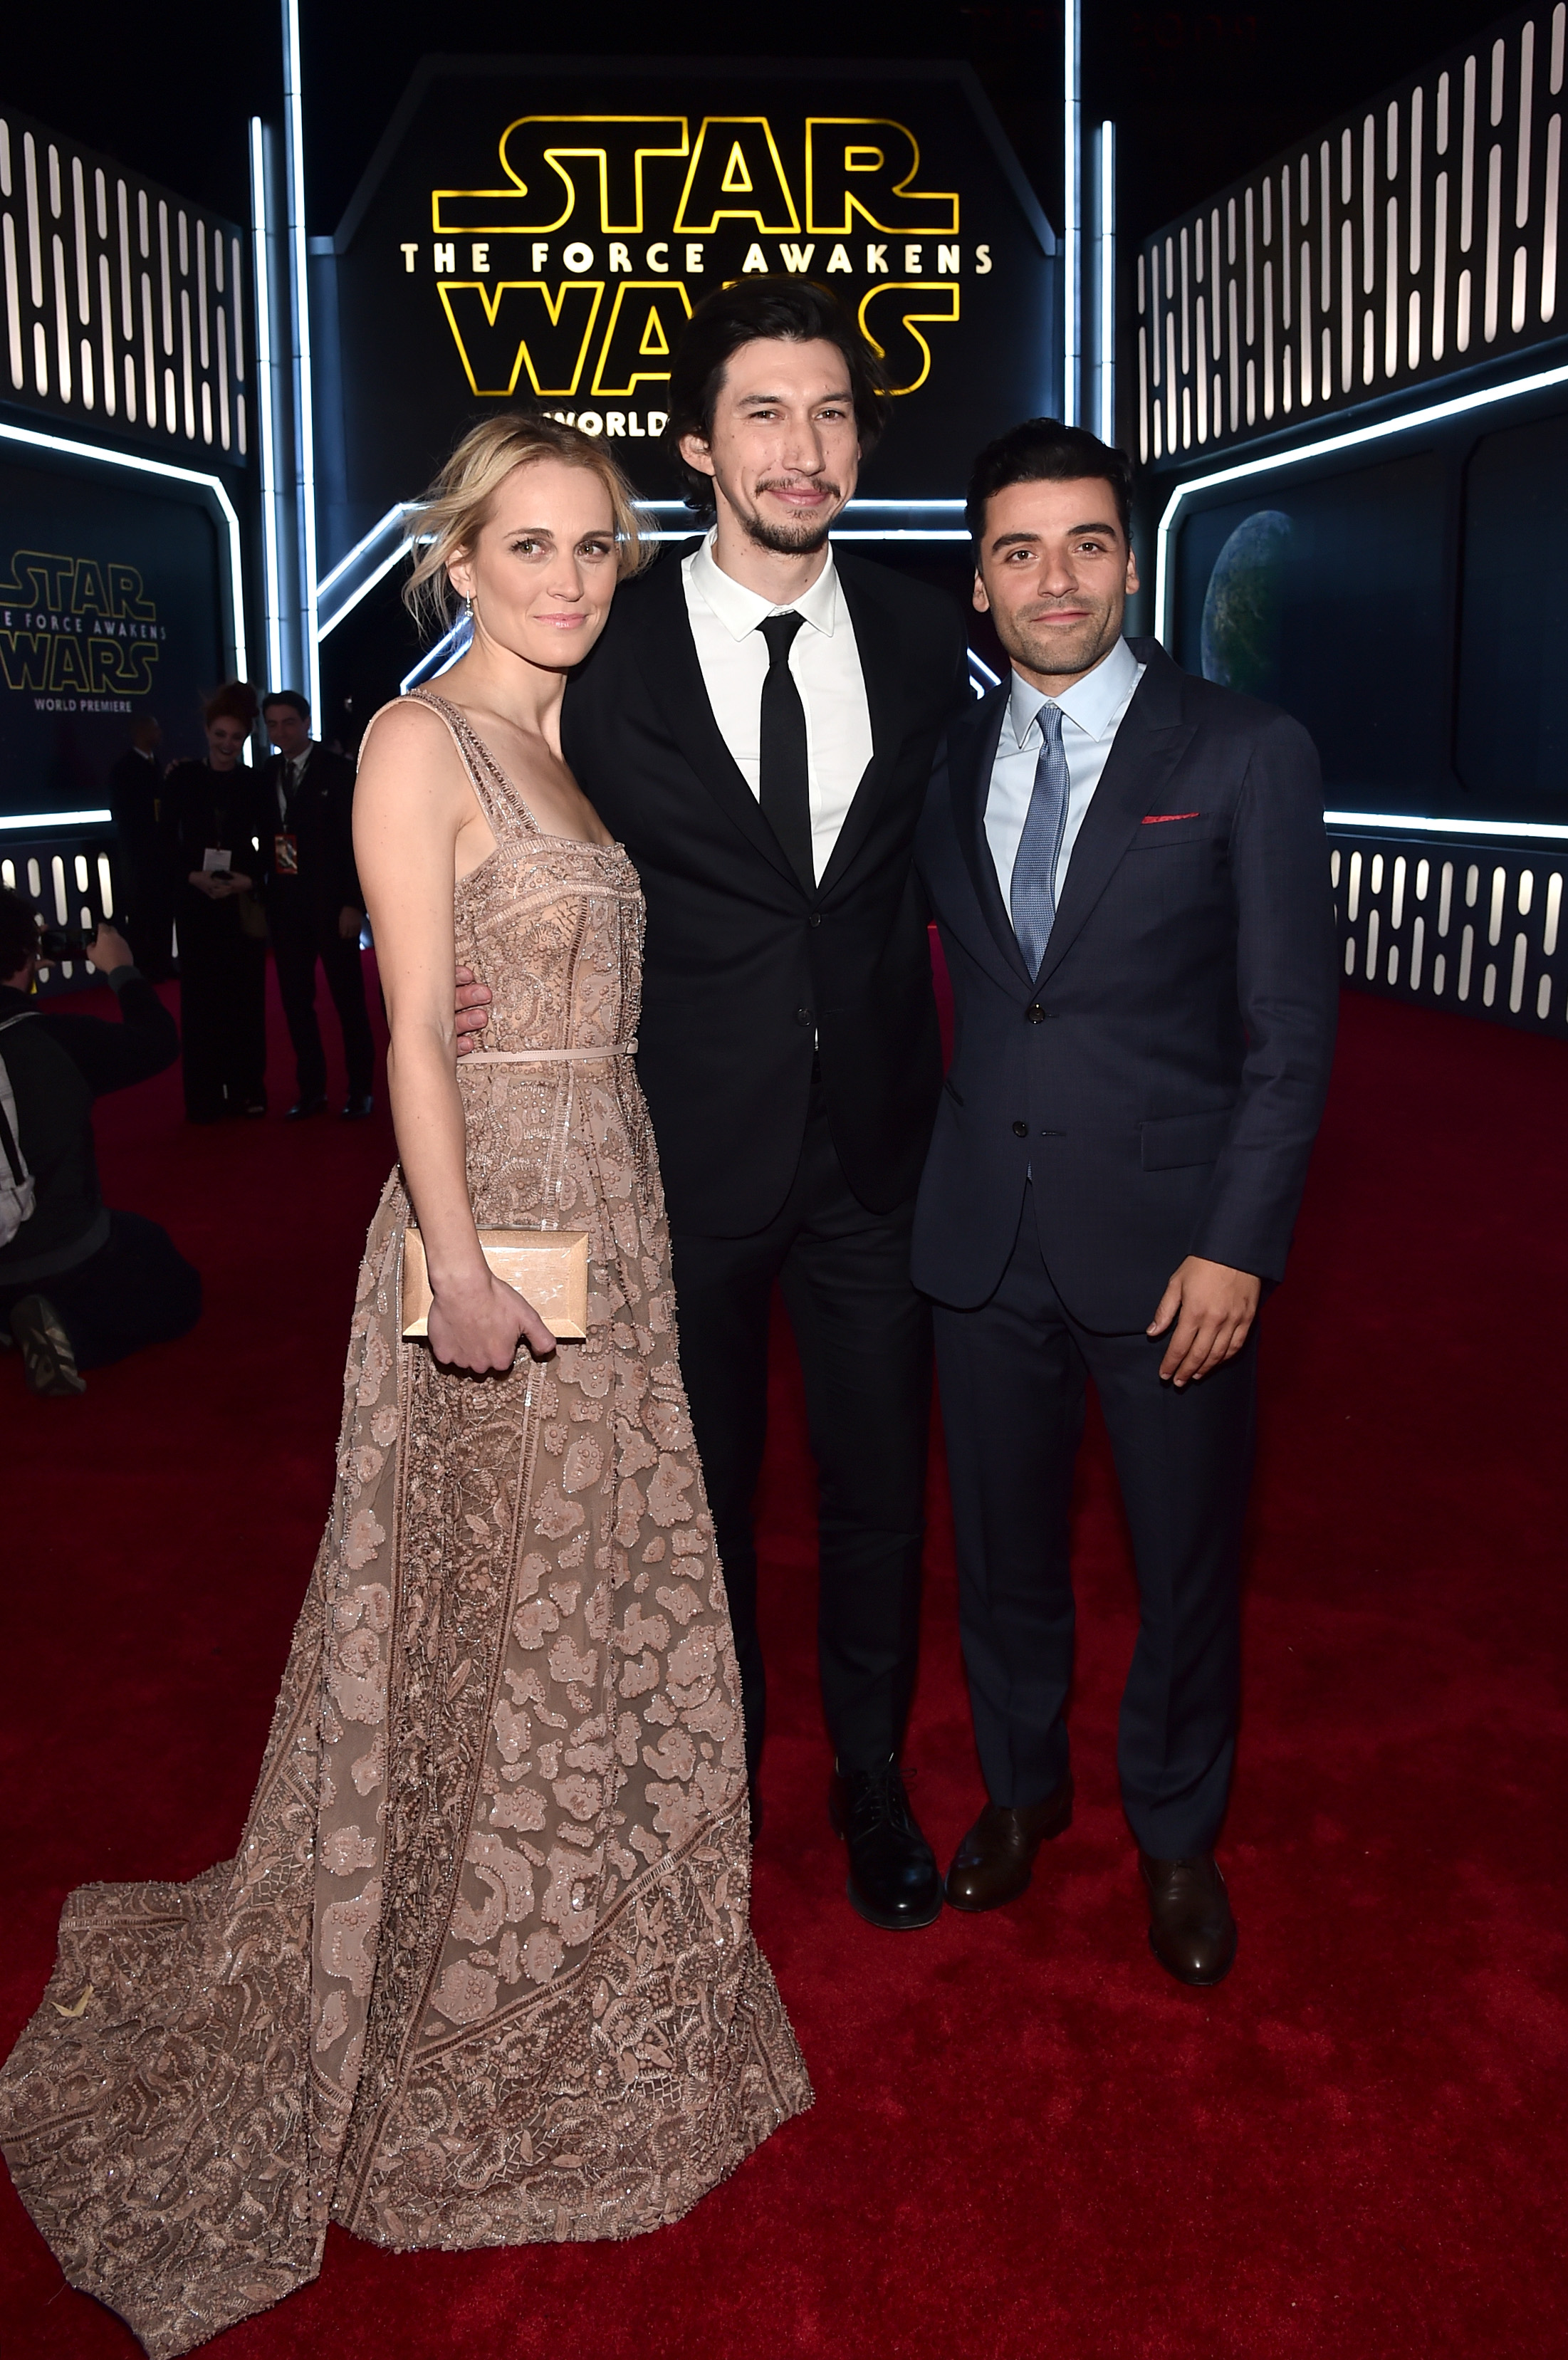 HOLLYWOOD, CA - DECEMBER 14: (L-R) Actors Joanne Tucker, Adam Driver and Oscar Isaac attend the World Premiere of ?Star Wars: The Force Awakens? at the Dolby, El Capitan, and TCL Theatres on December 14, 2015 in Hollywood, California.  (Photo by Alberto E. Rodriguez/Getty Images for Disney) *** Local Caption *** Adam Driver;Joanne Tucker;Oscar Isaac